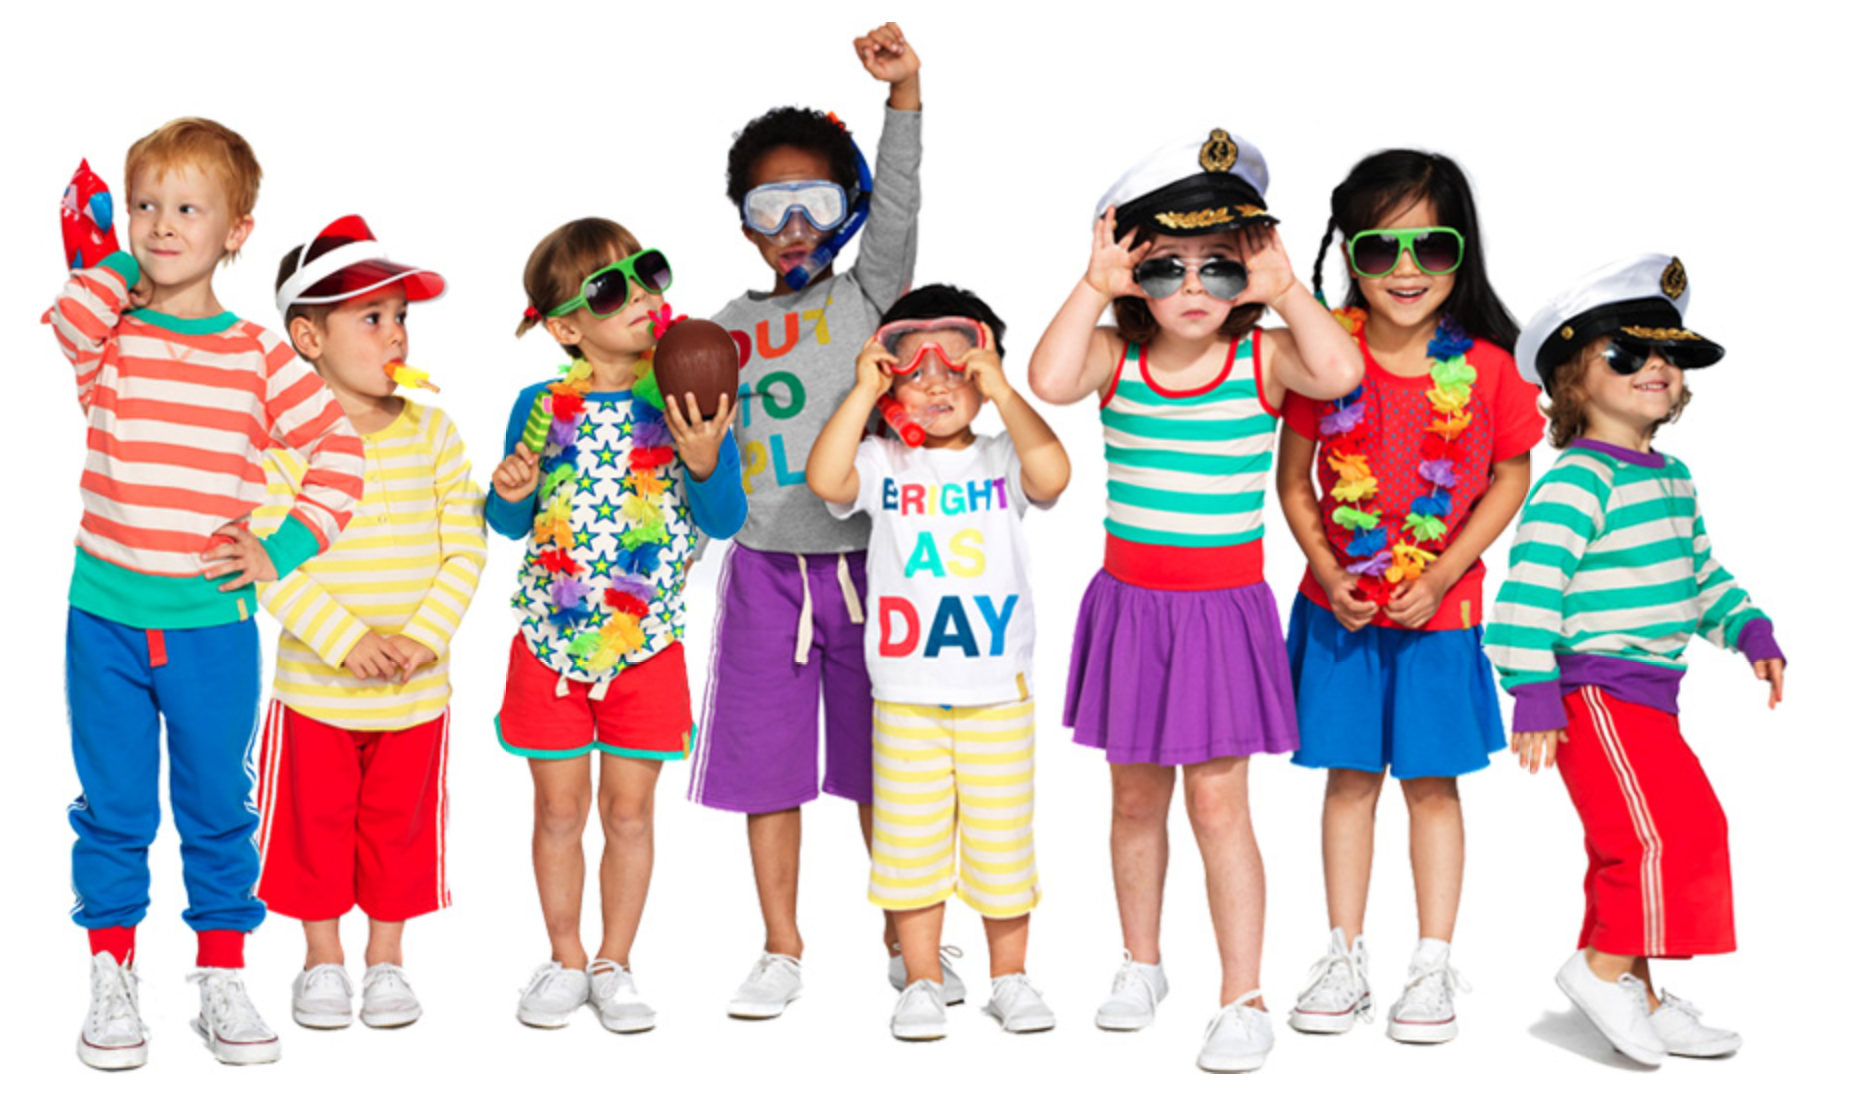 PNG HD Pictures Of Children - 124106